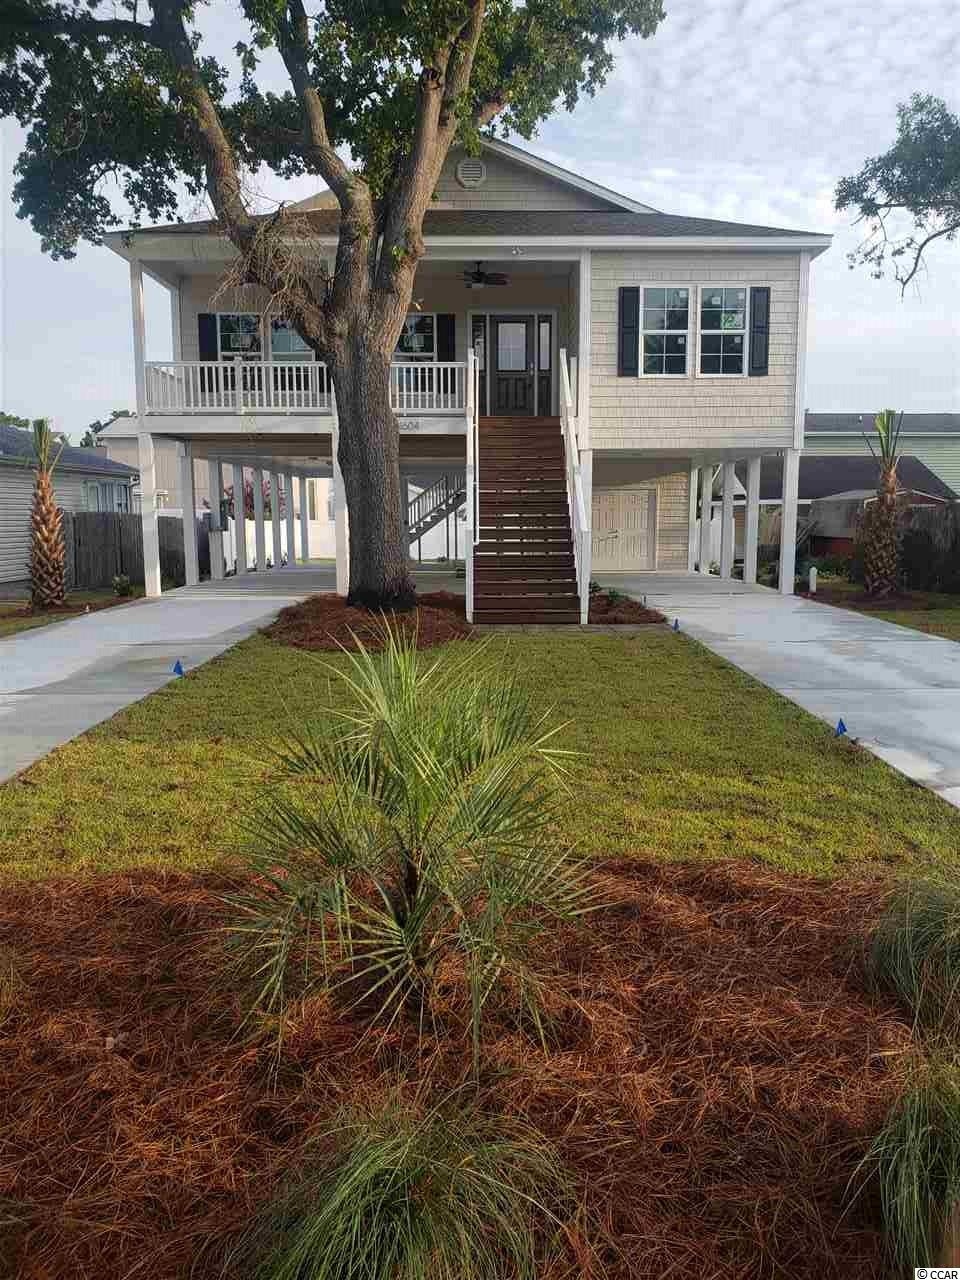 4BR / 3BA new raised beach style home east of Hwy 17 in NMB.  Home features 9 & 10' ceilings, crown molding, custom kitchen with granite and stainless appliances. Master suite with double vanity and full tile shower. Ceiling fans and wood floors throughout. Fully landscaped yard with concrete driveway.